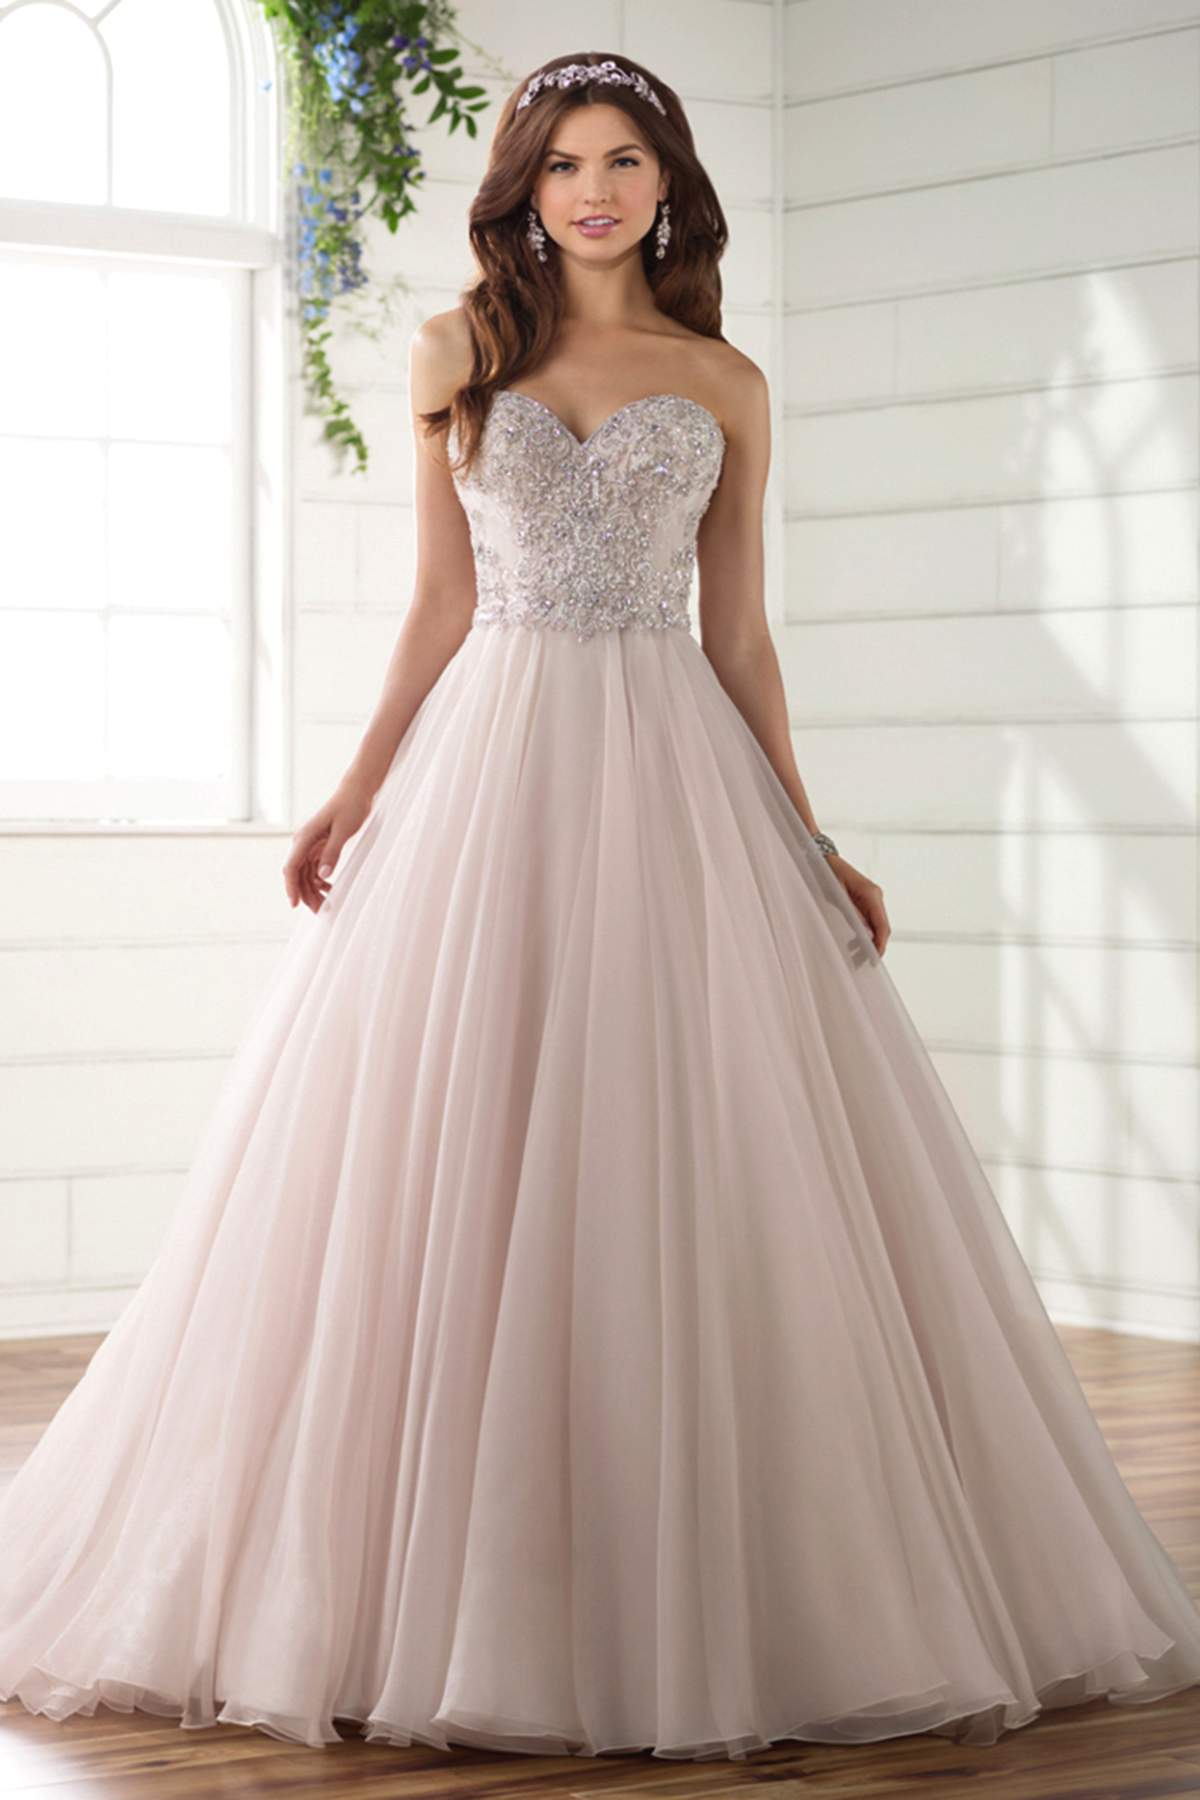 Style D2272 by Essense of Australia - Find Your Dream Dress